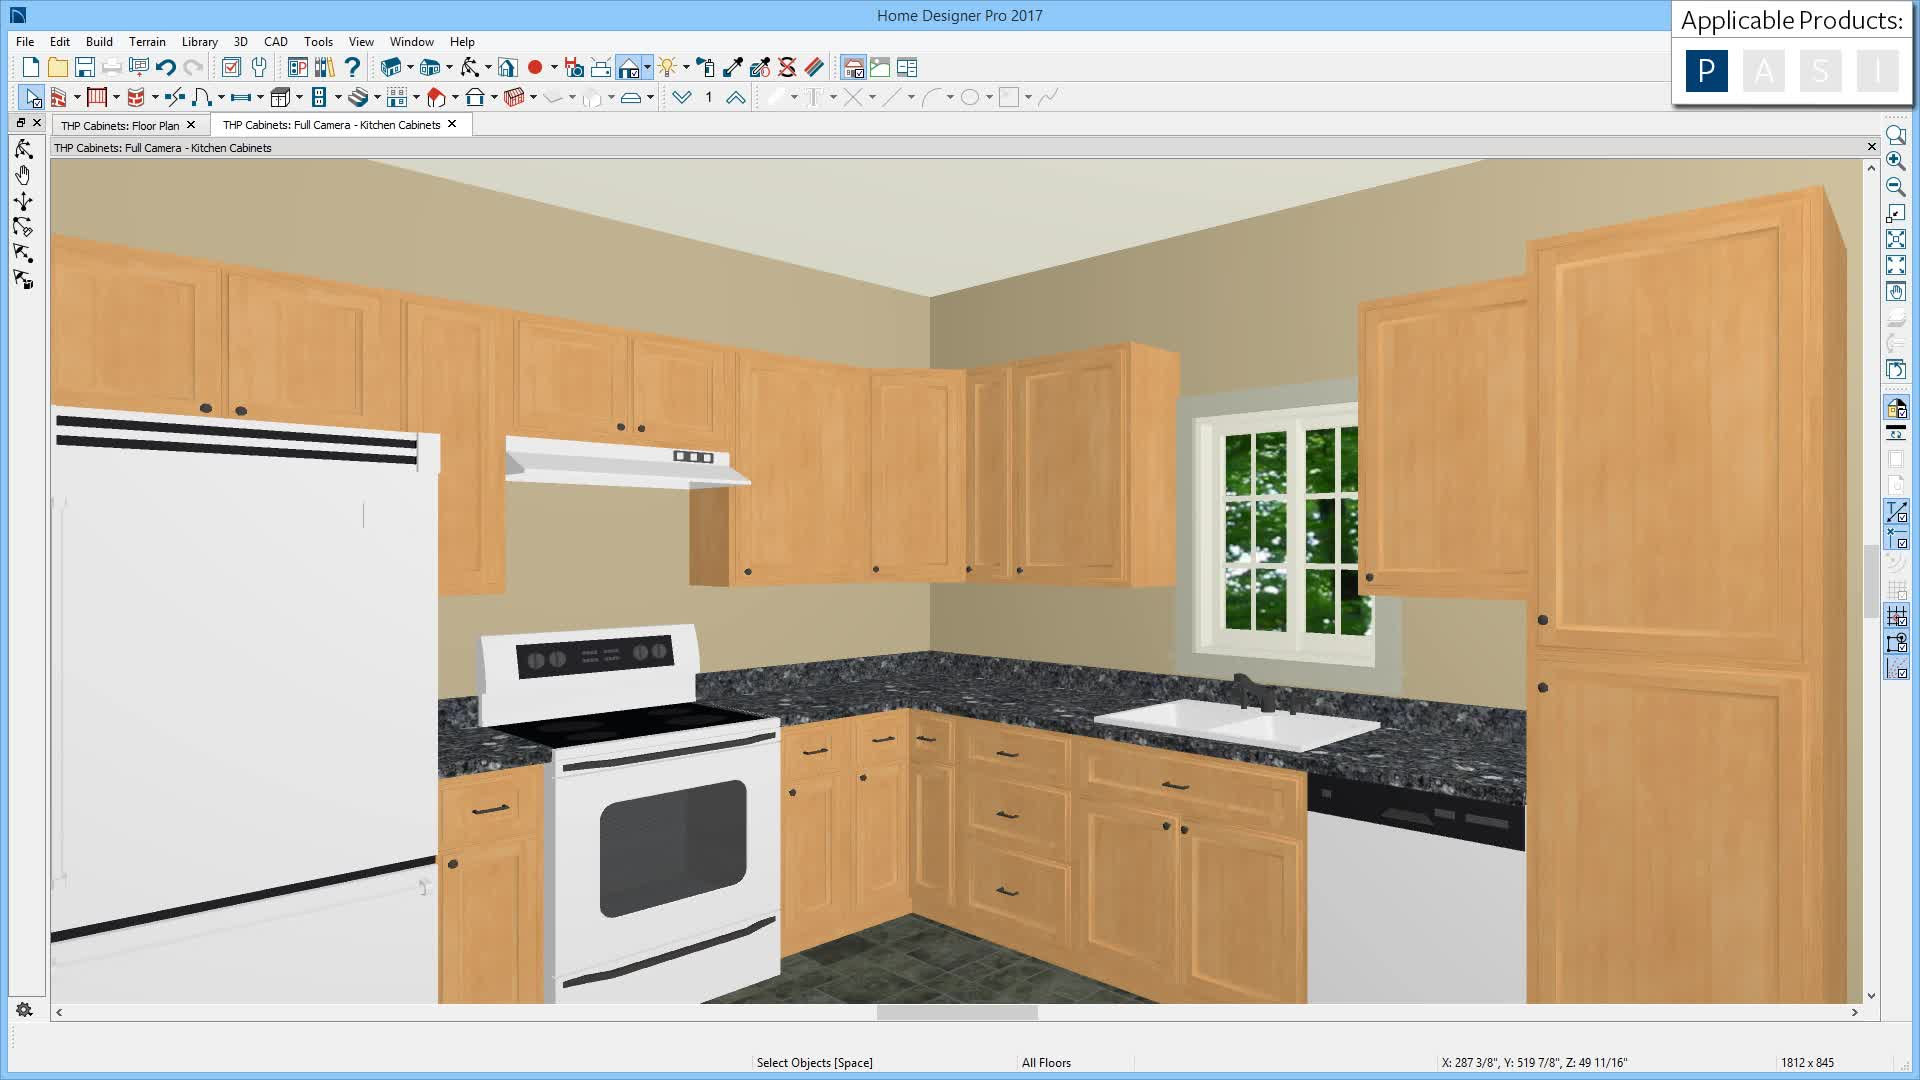 Cabinets in Home Designer Pro